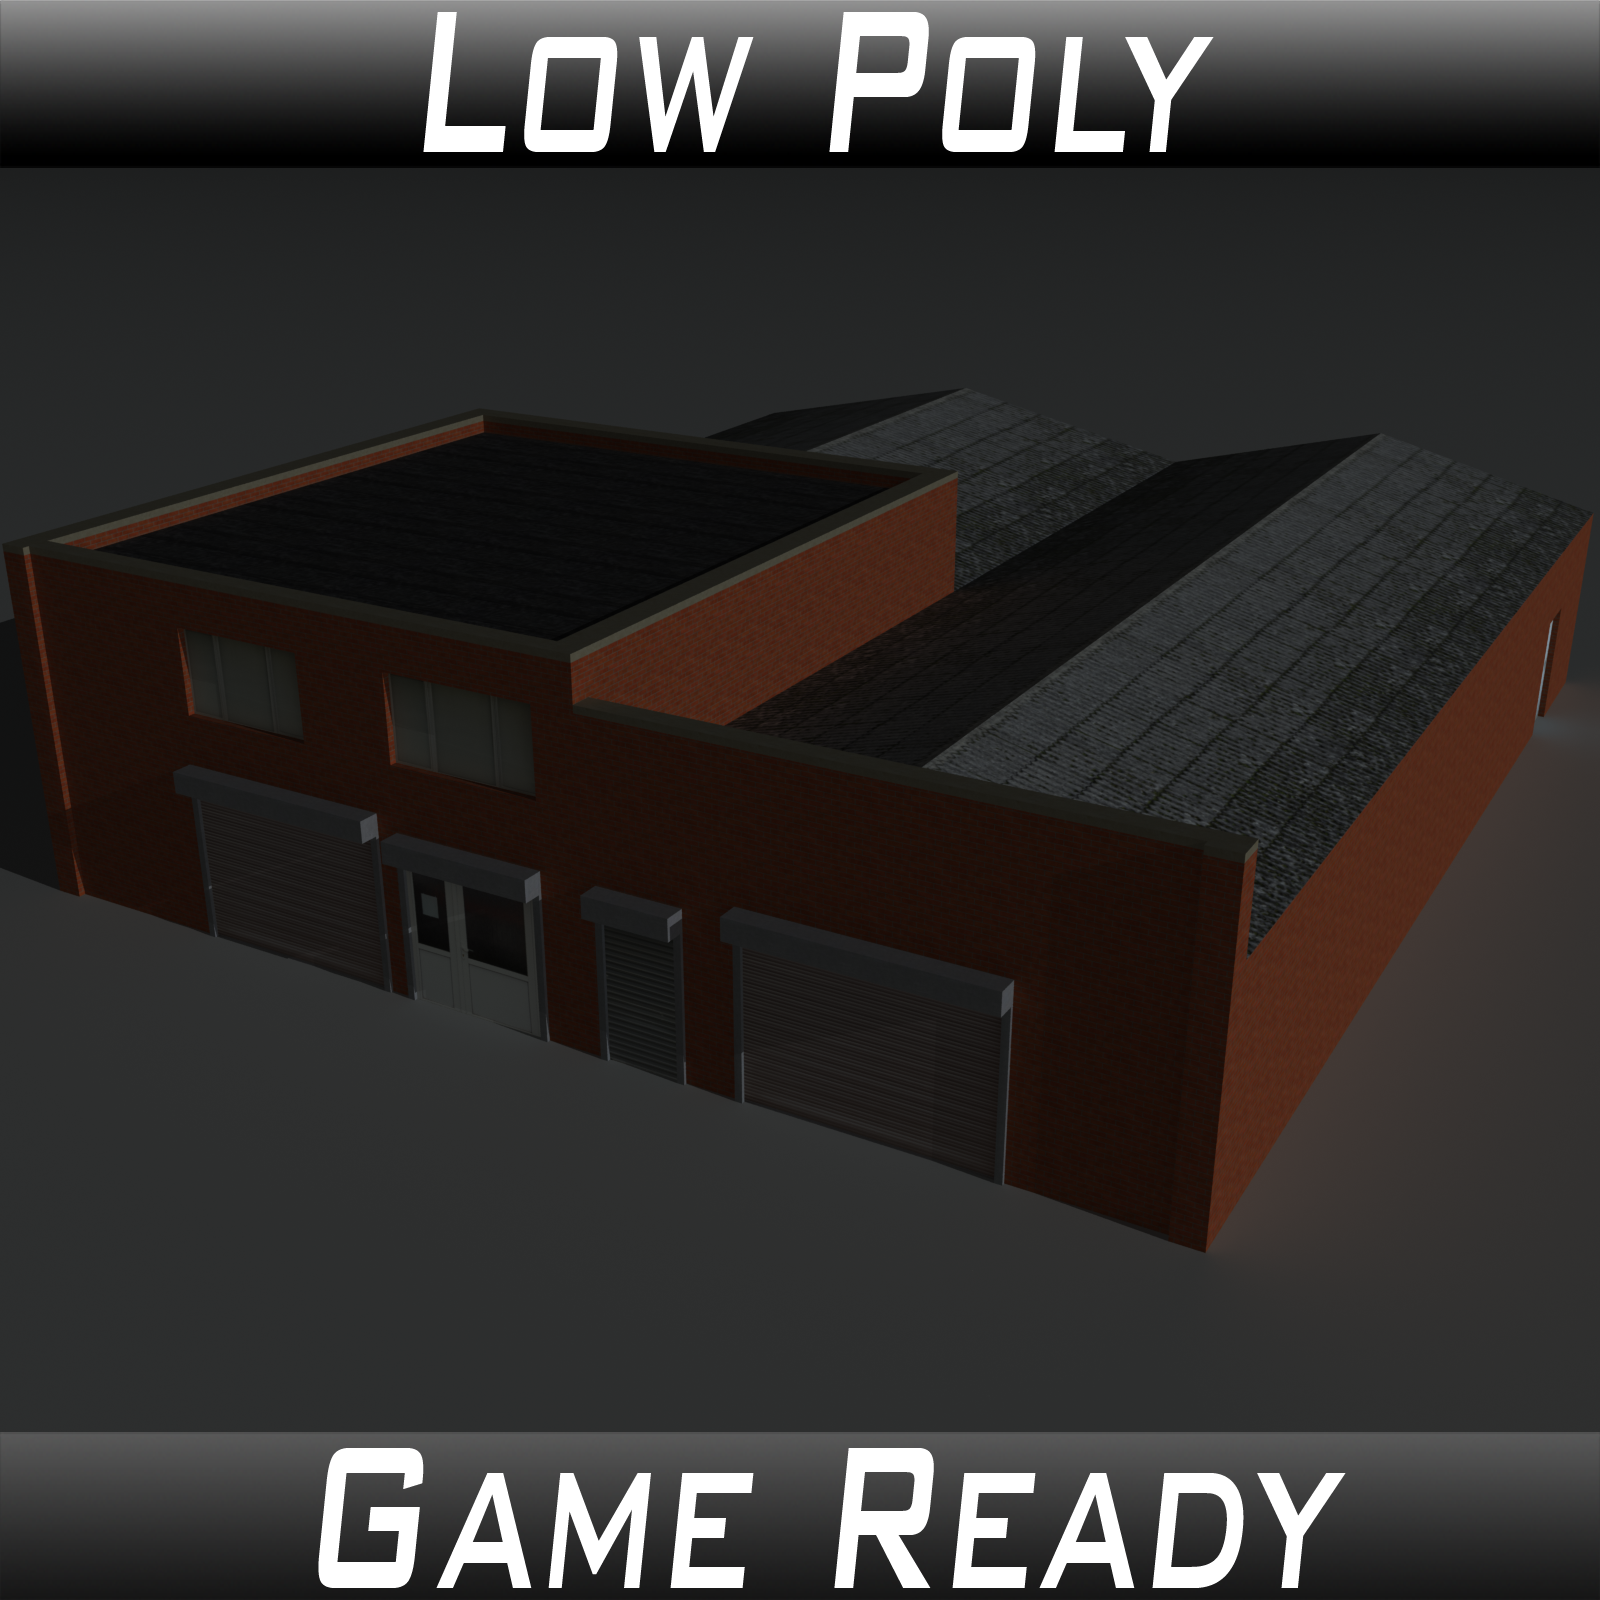 Low Poly Factory Building 26 - Extended Licence by 3dlands